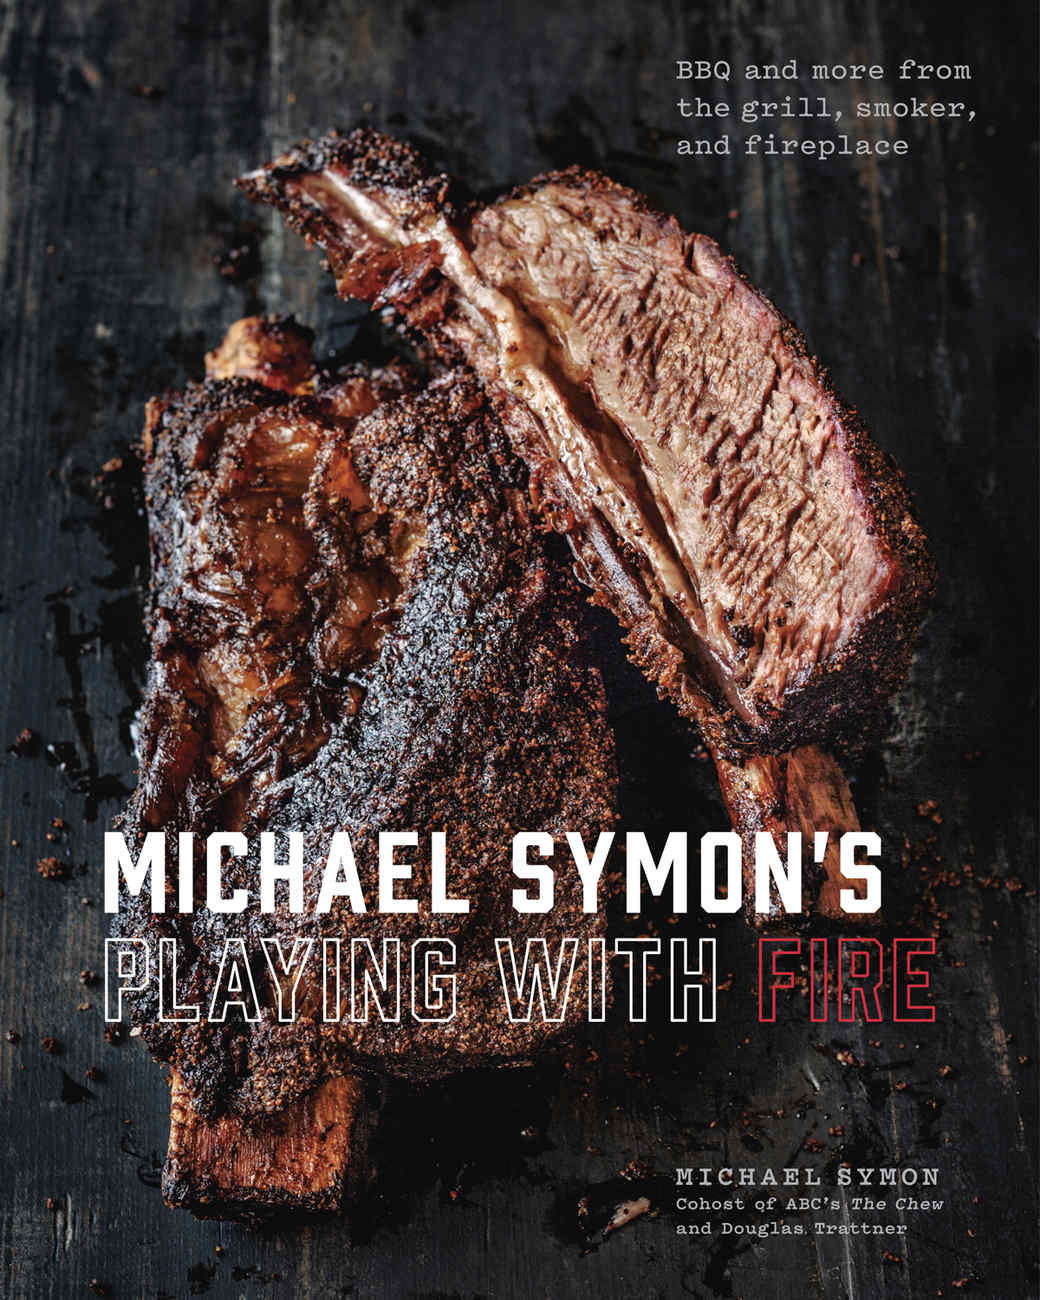 summer cookbooks playing with fire